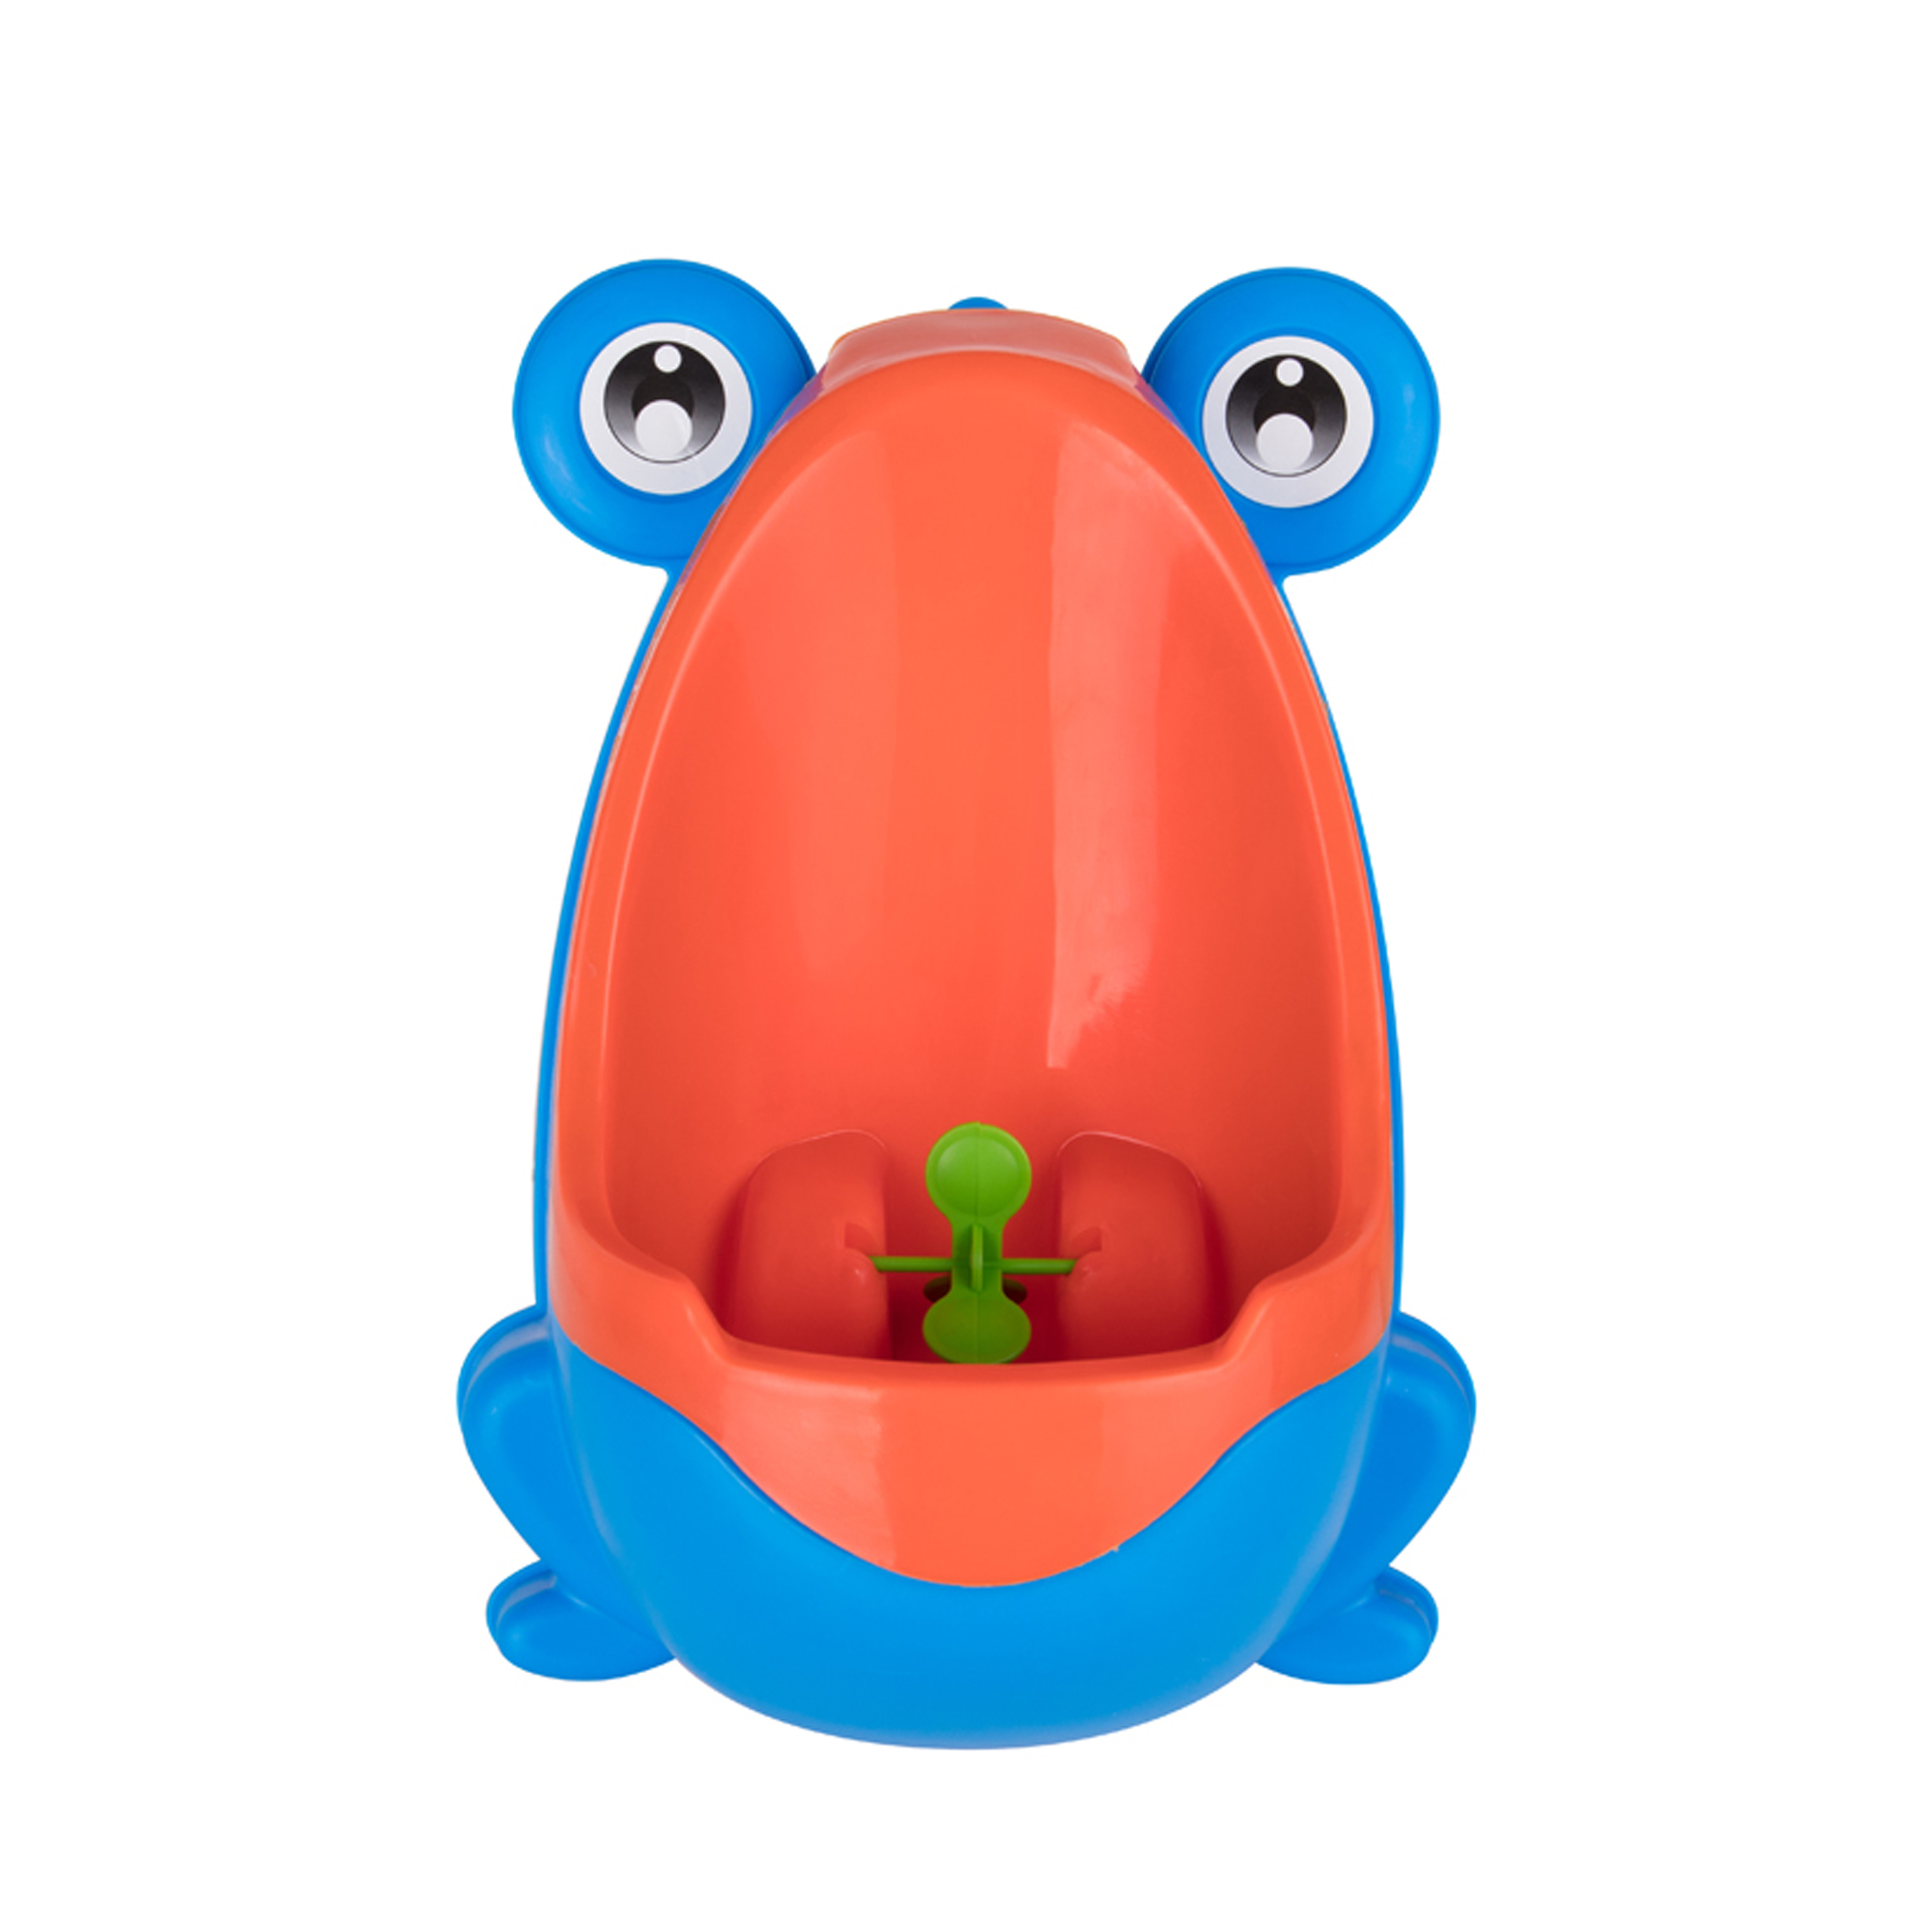 NK Cute Frog Children Potty Toilet Training Urinal Kid Urinal for Boys Pee Trainer with Funny Aiming Target